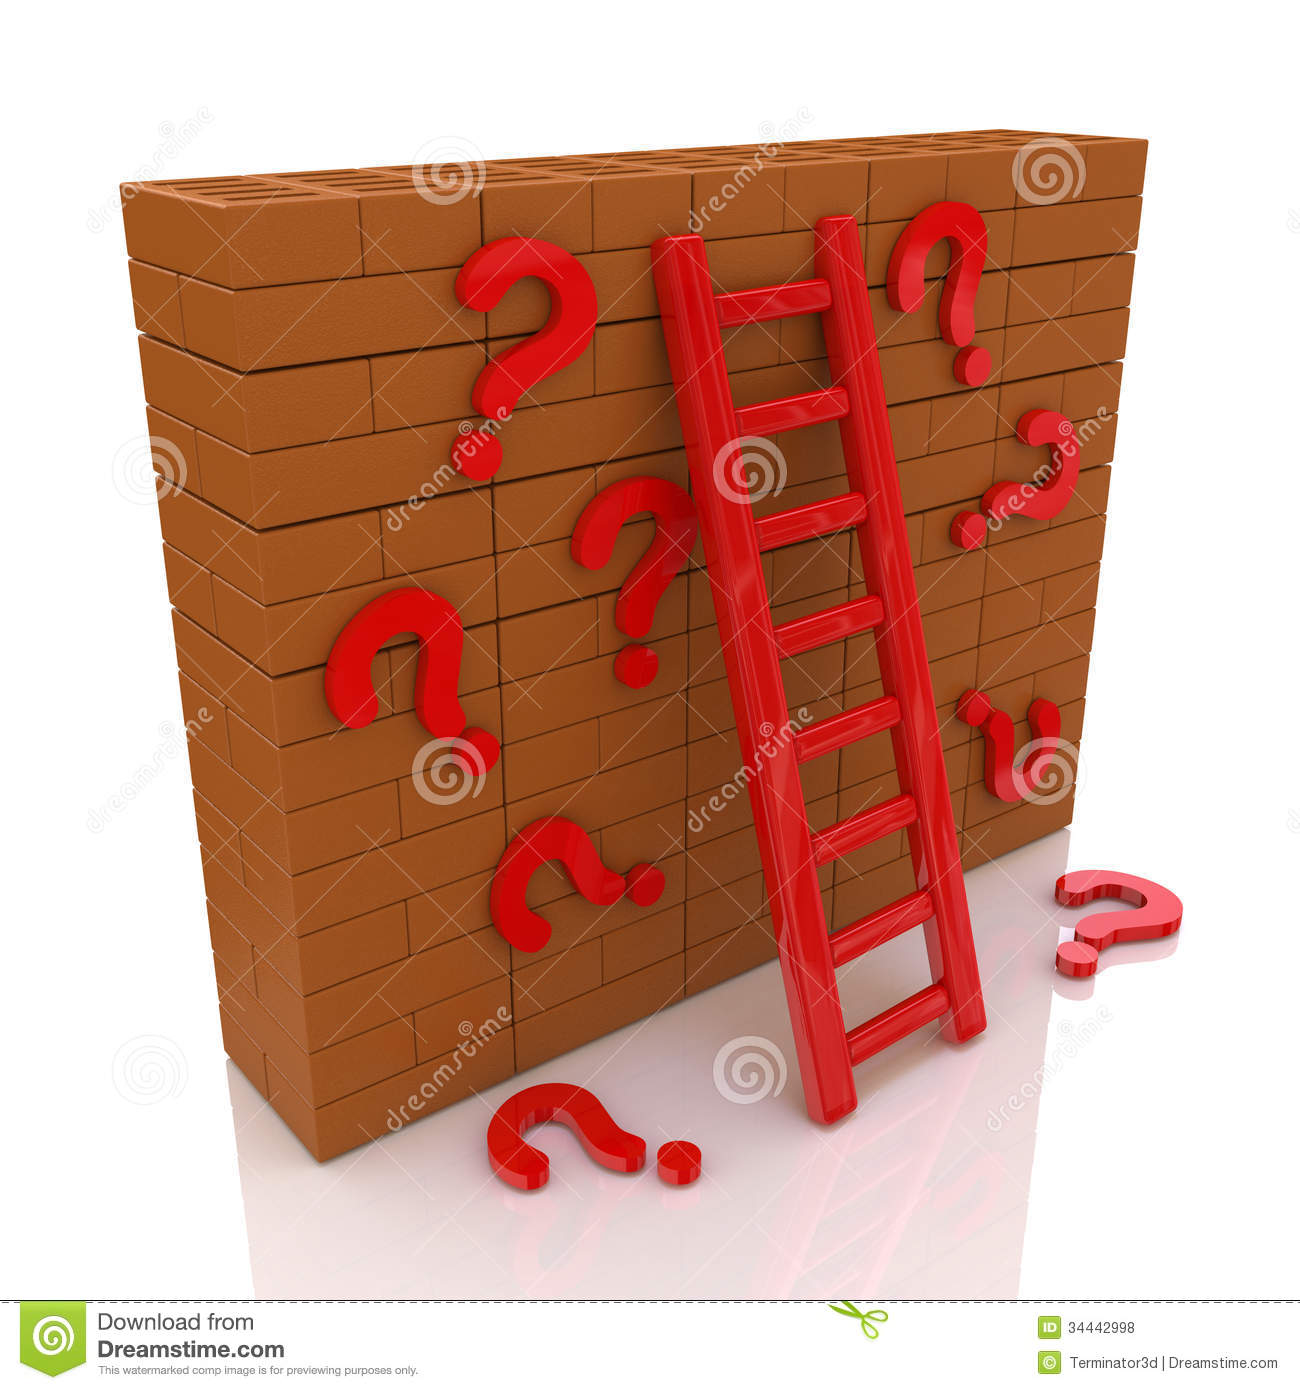 Wall questions royalty free stock photos image 34442998 for Decor questions